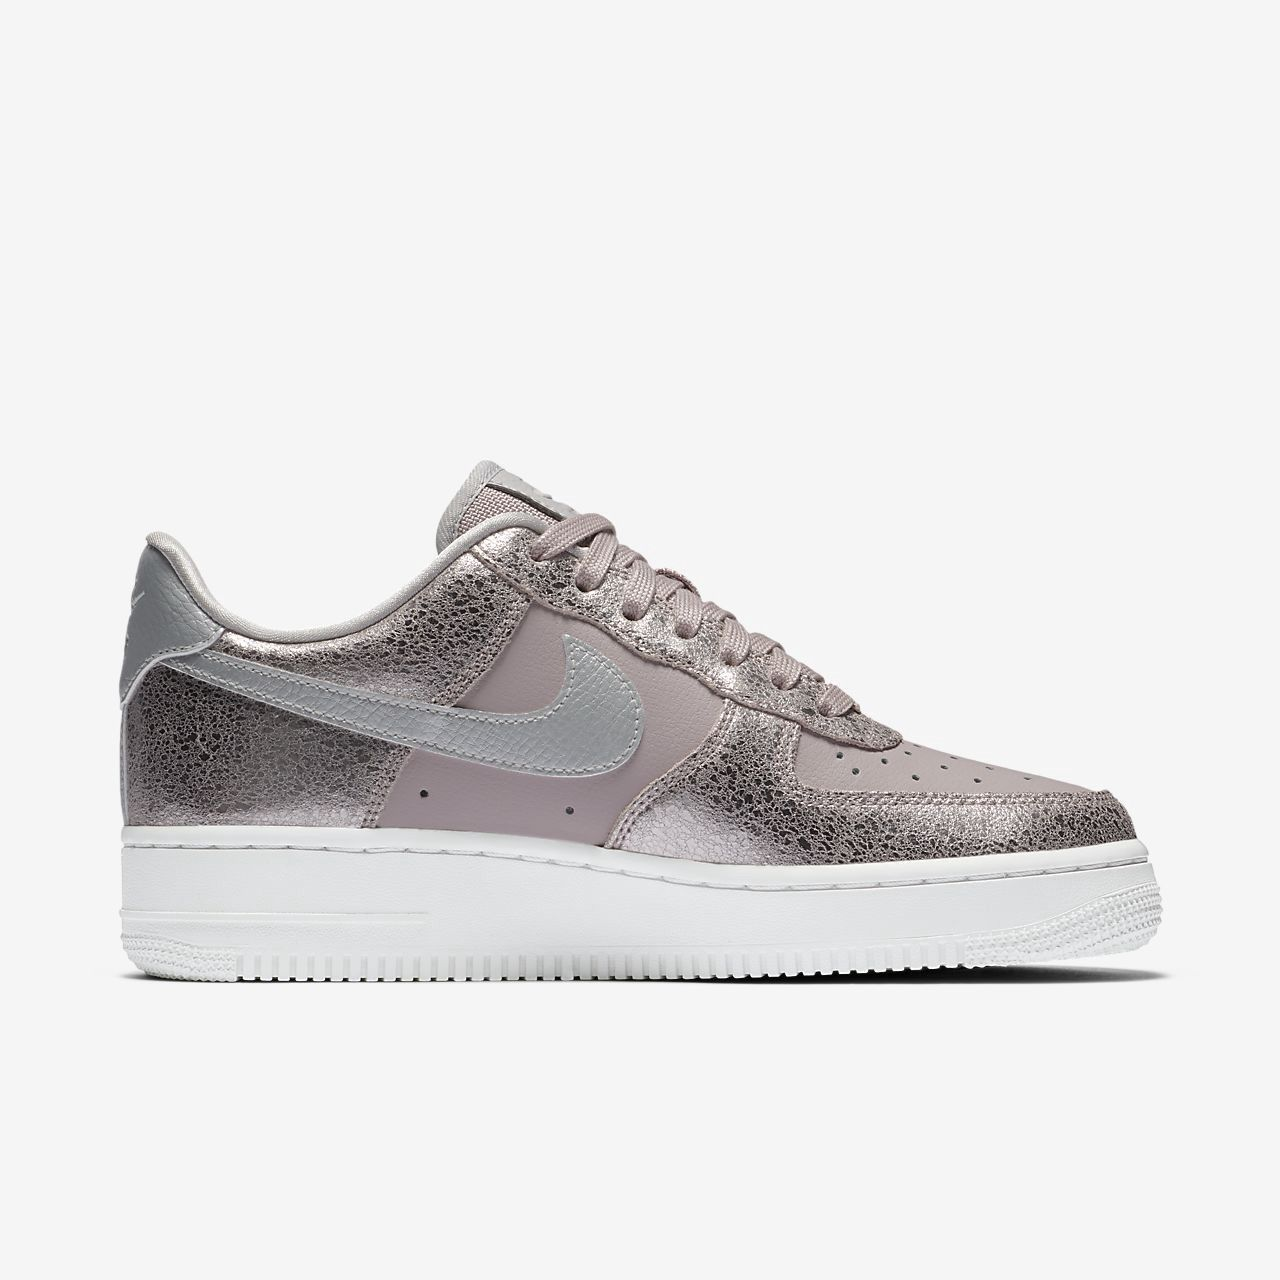 11 Nike Air Premium Force 07 1 5 In Shoe Women's paPpRTw